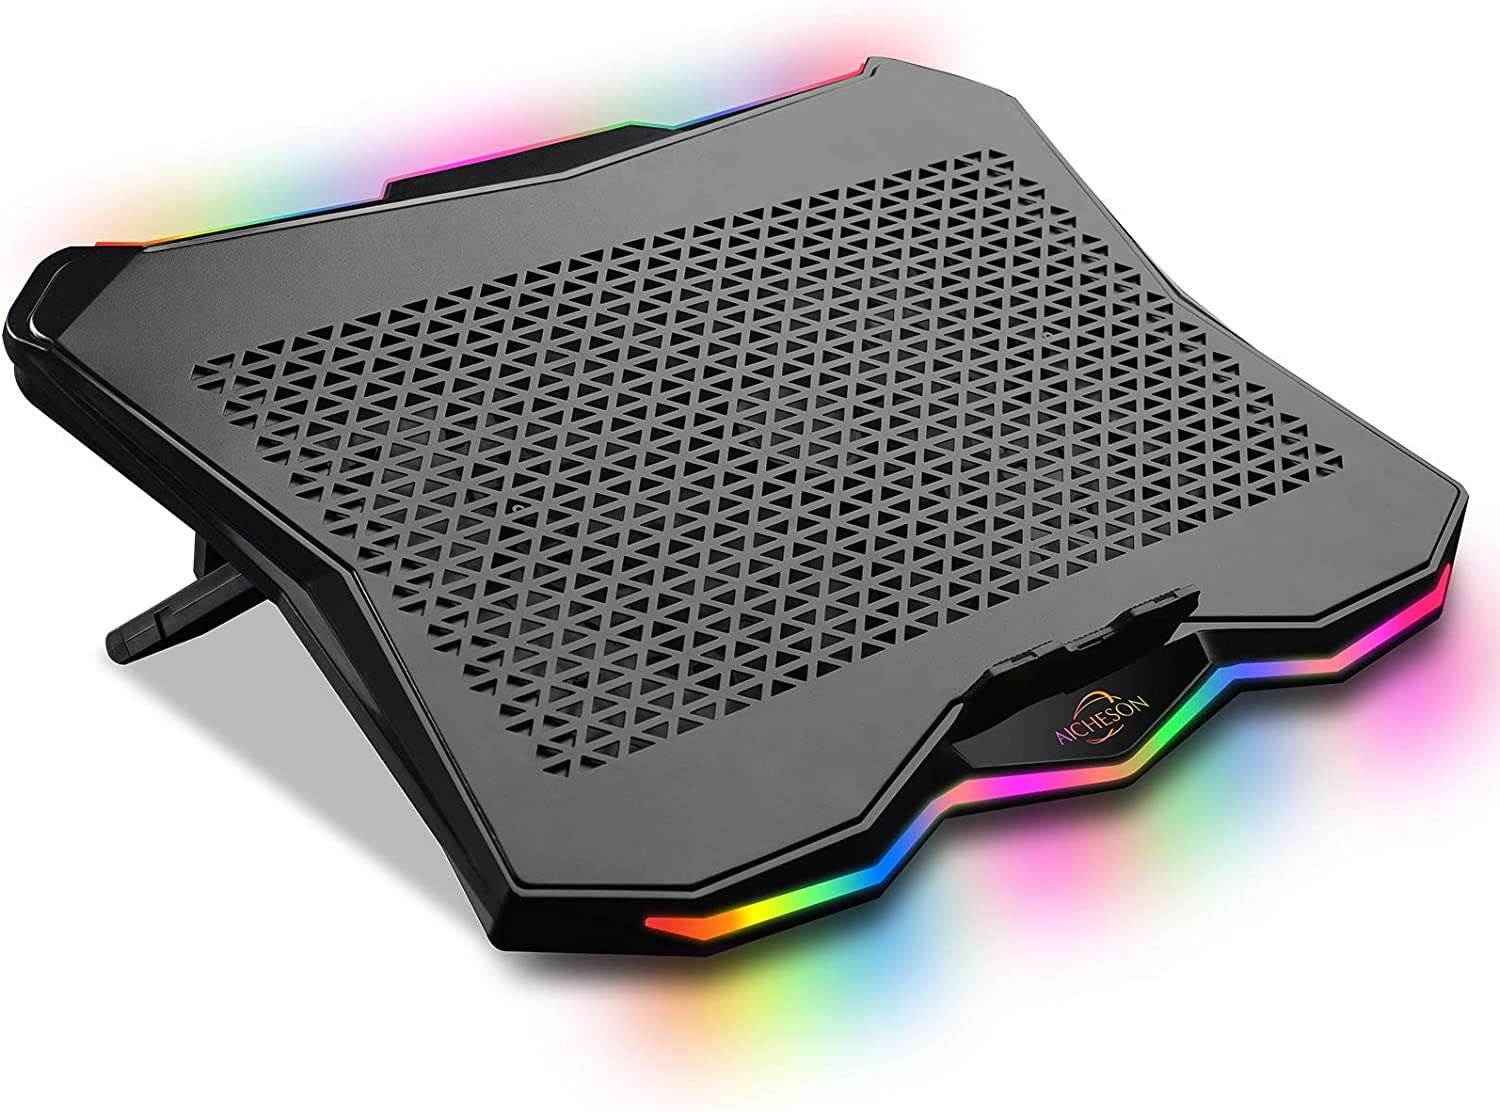 AICHESON Laptop Cooling Cooler Pad 15.6-17.3 Inch with Metal Panel, 1 Big Fan, Rainbow Lights, AA3